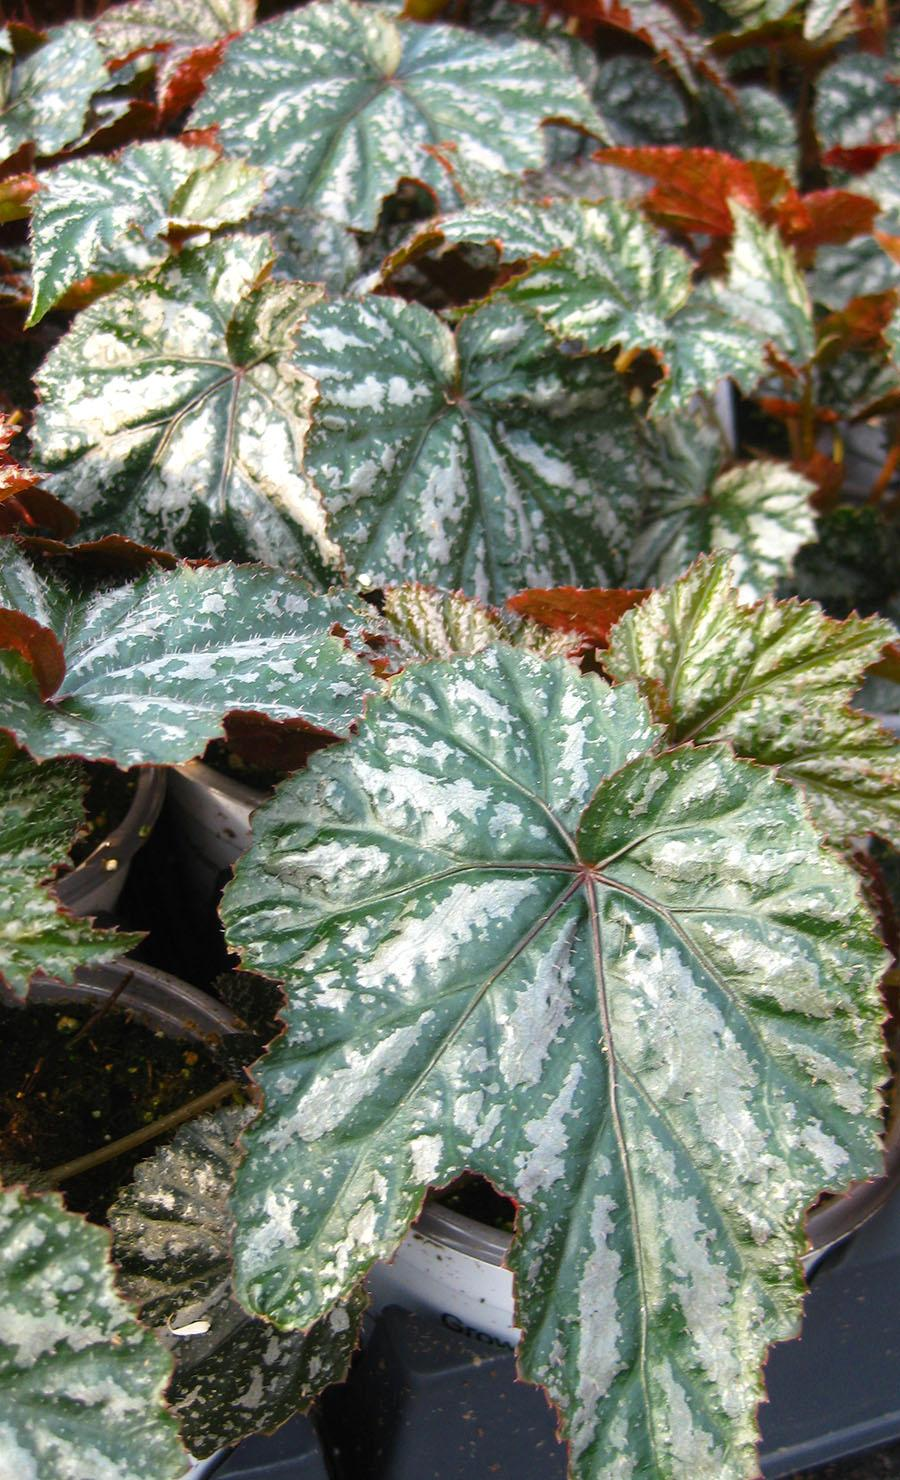 Gryphon Begonia from Hoods Gardens